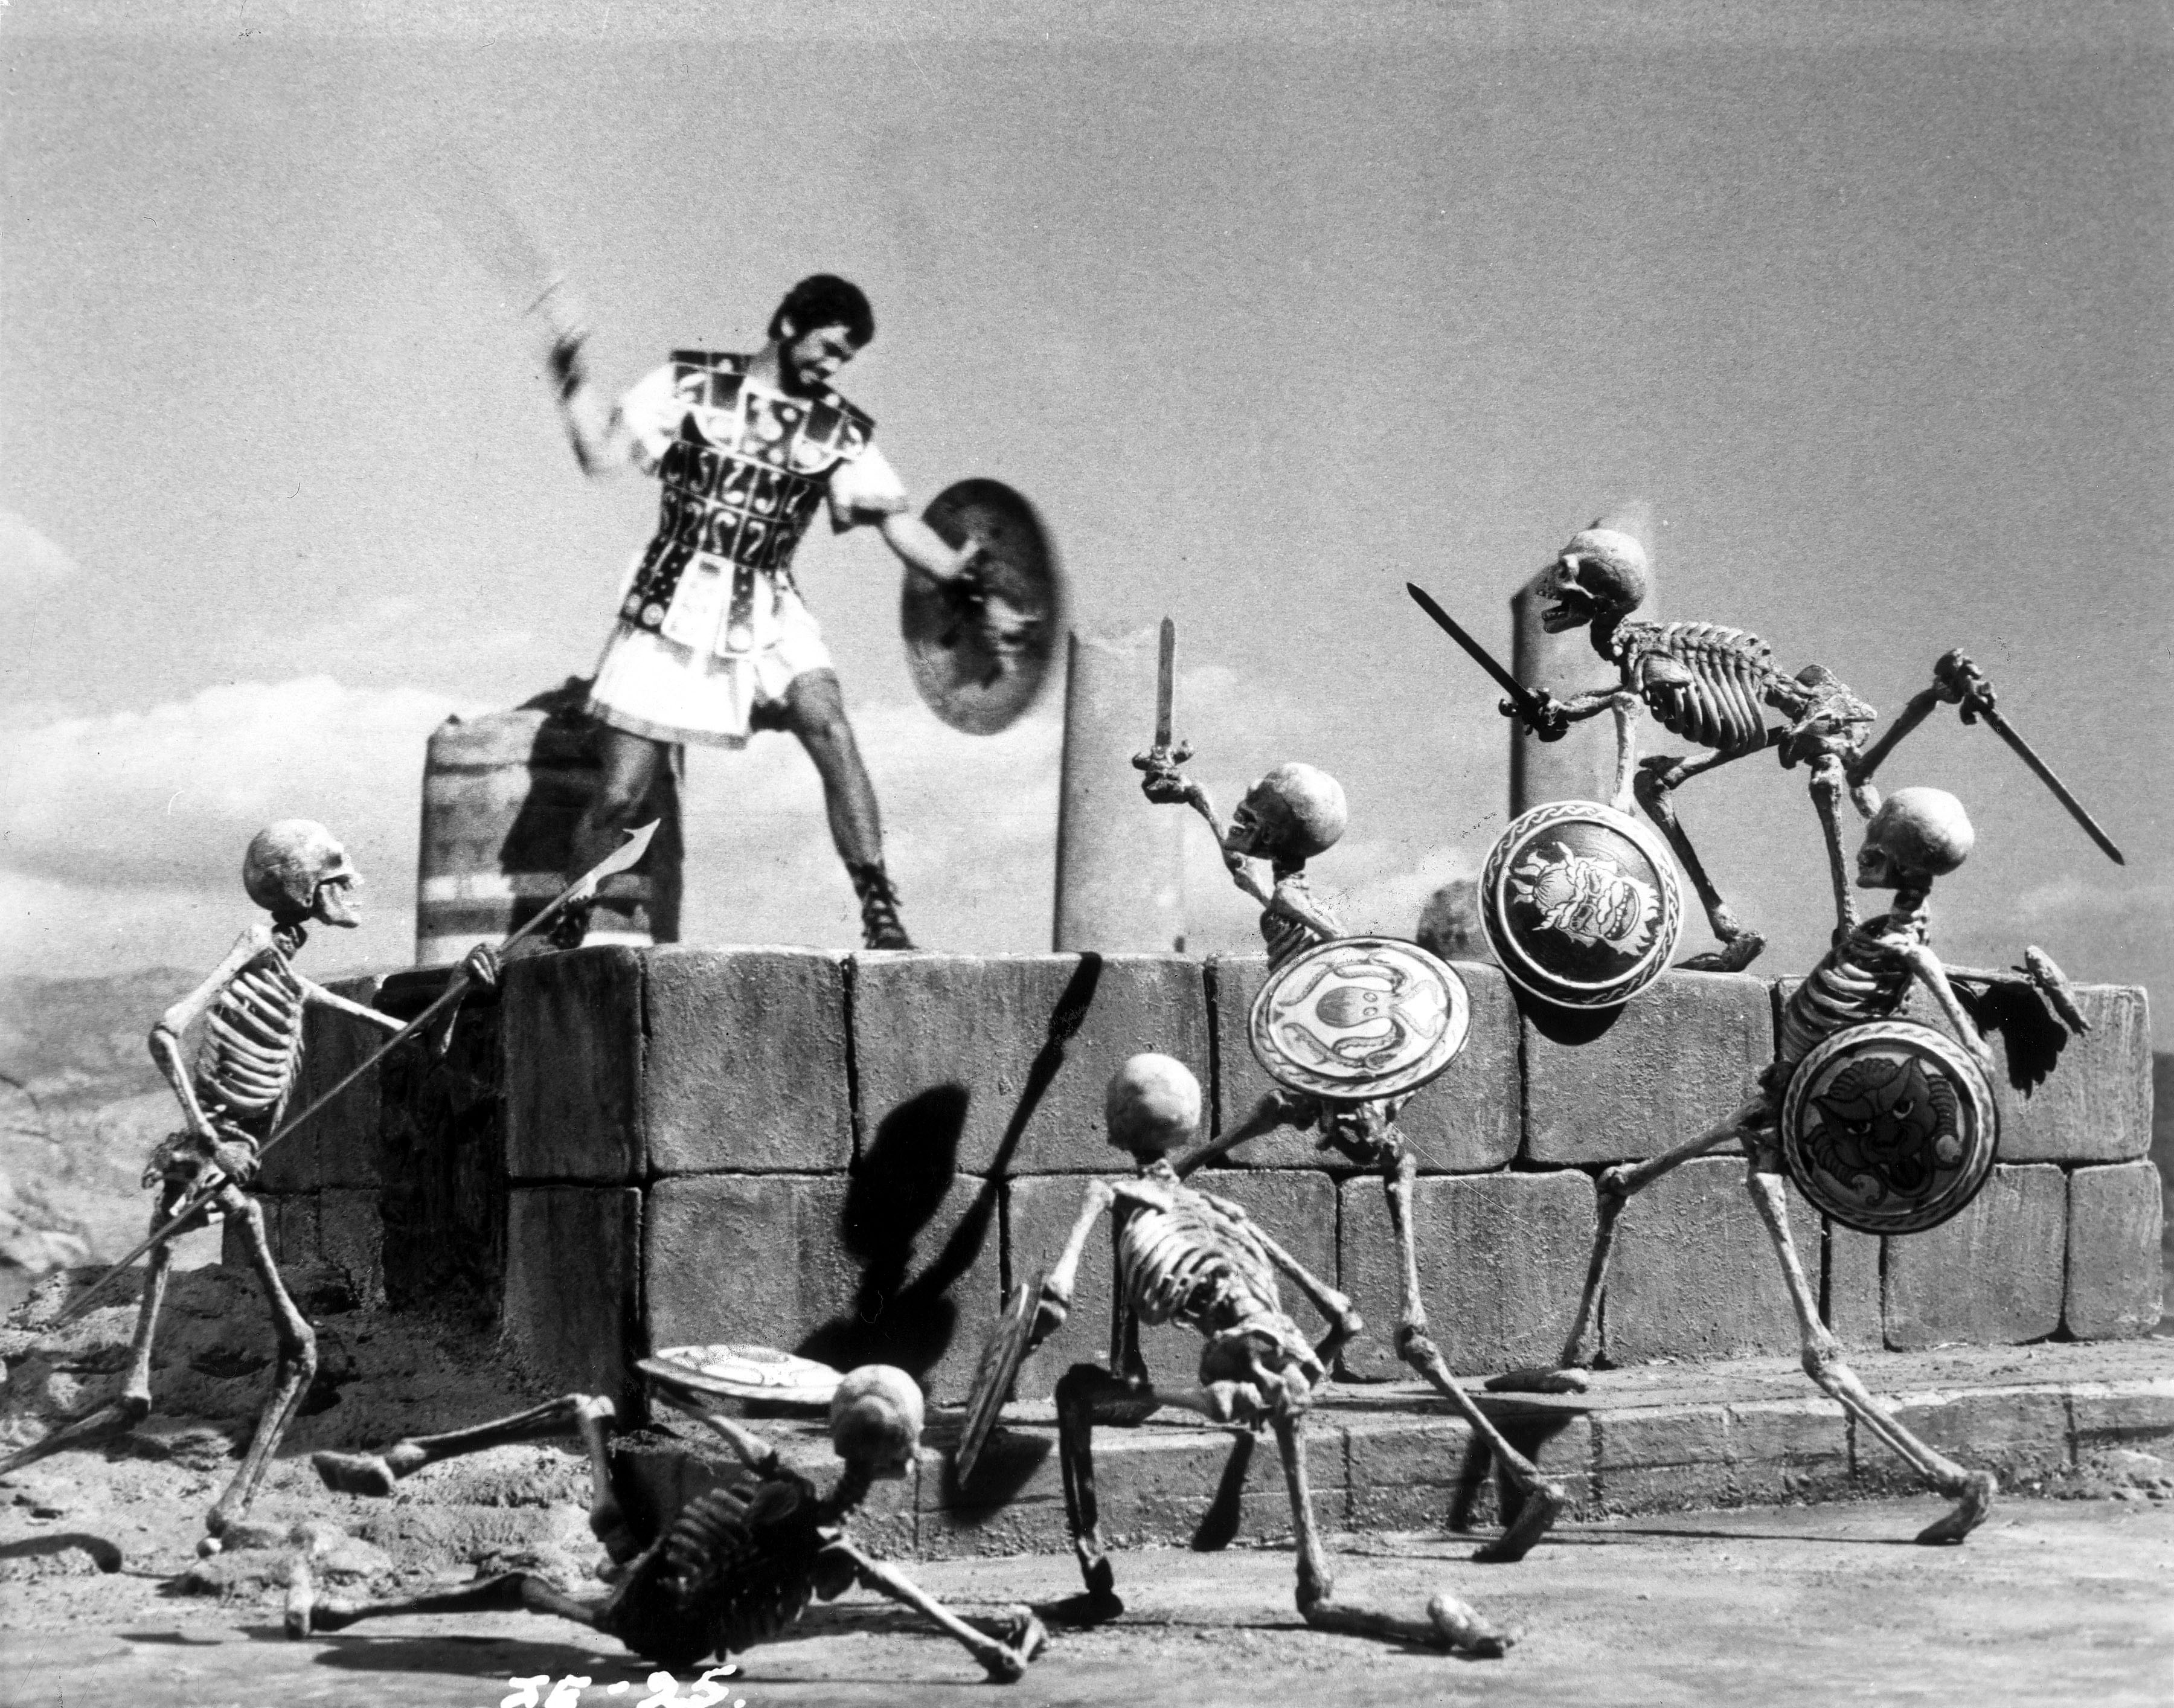 Jason the argonauts a journey